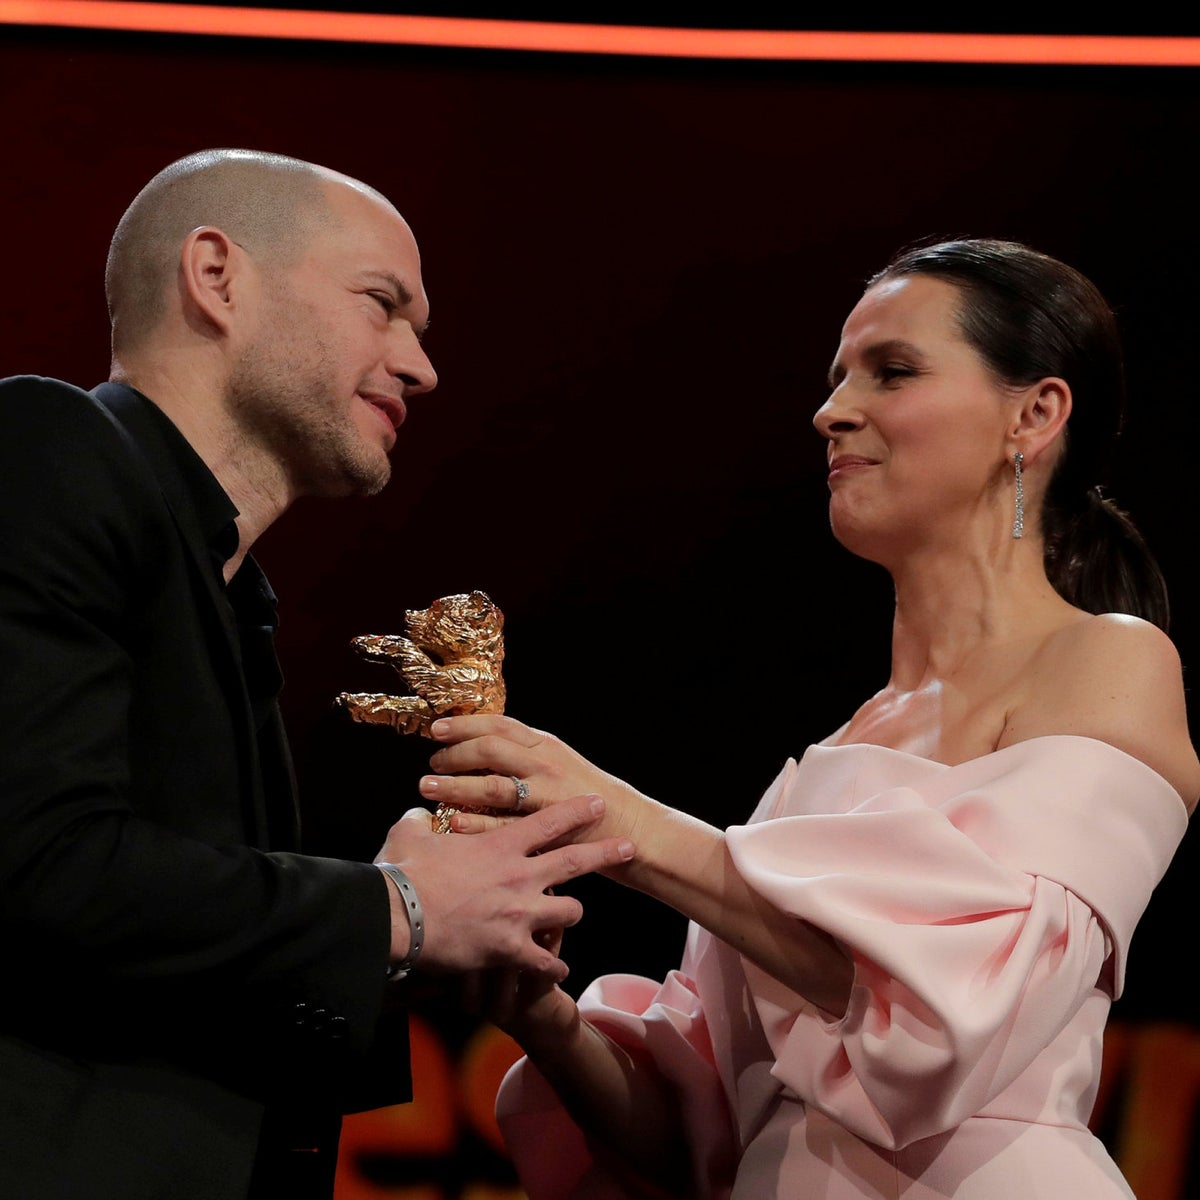 Director Nadav Lapid, left, receives the golden bear from jury president Juliette Binoche at the award ceremony of the 2019 Berlinale Film Festival in Berlin, Germany, Saturday, Feb. 16, 2019.